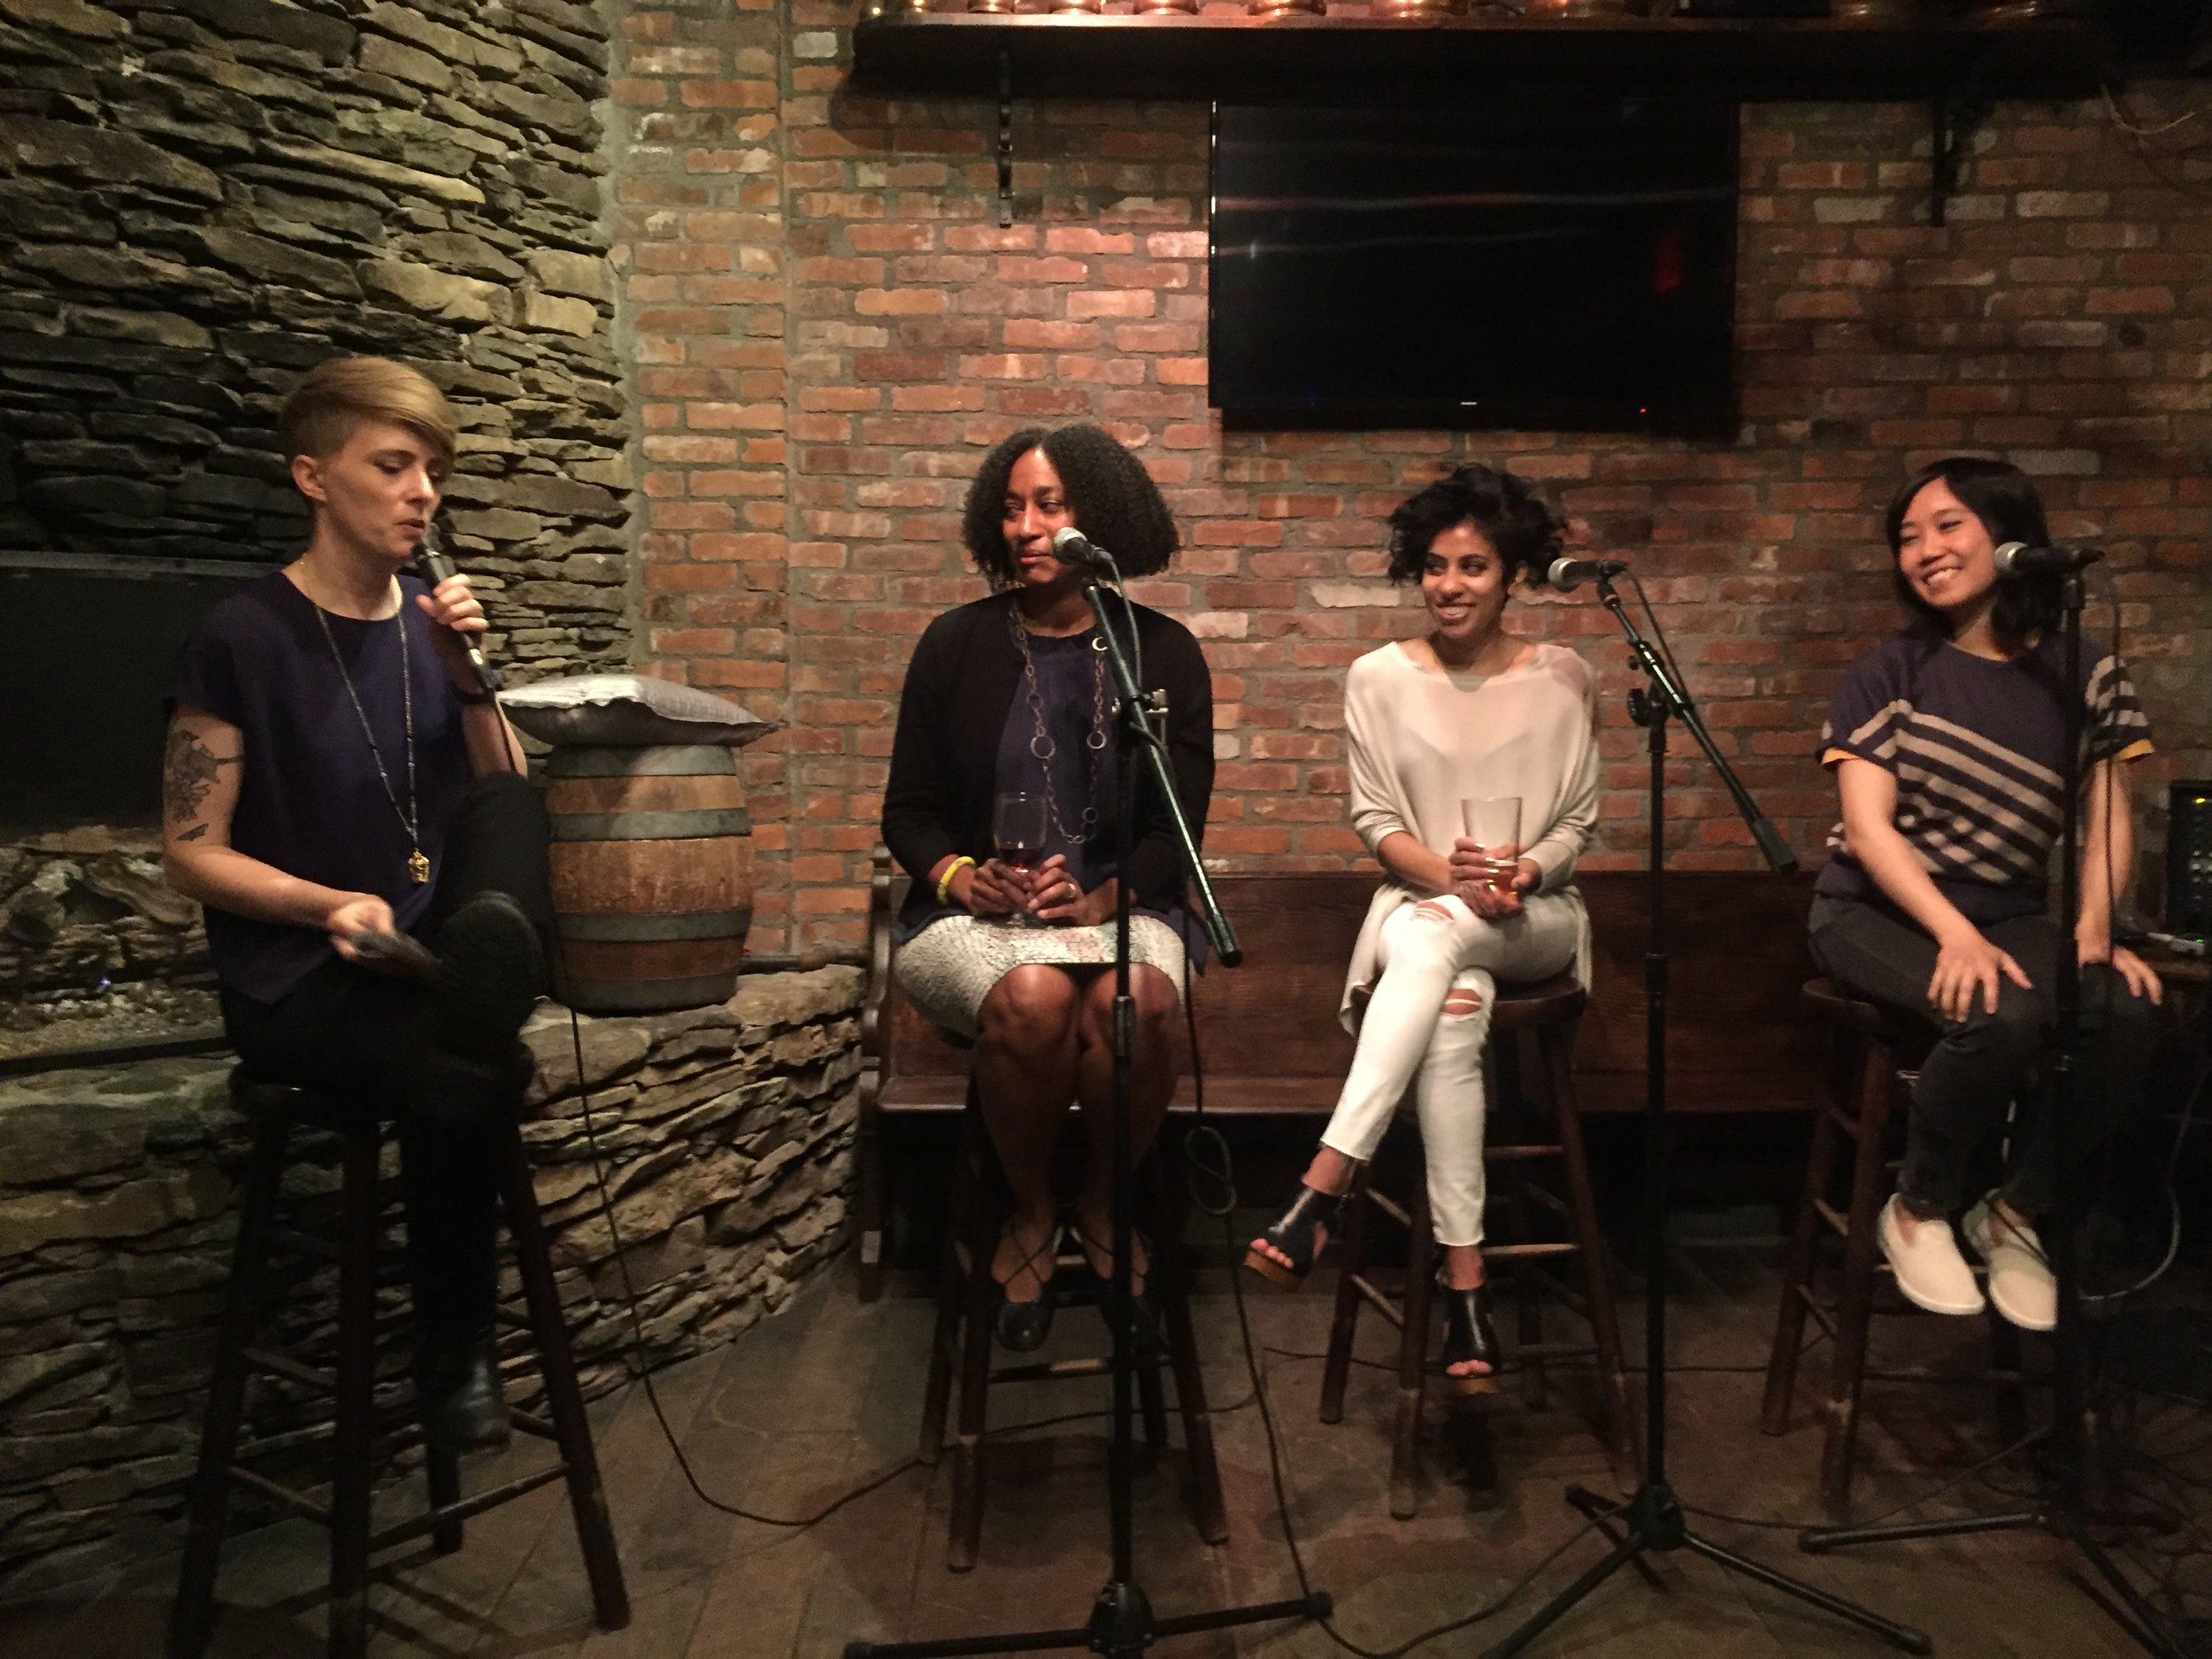 FP authors Bridgett Davis, Chaya Babu, and YZ Chin perform at the LIC Reading Series.